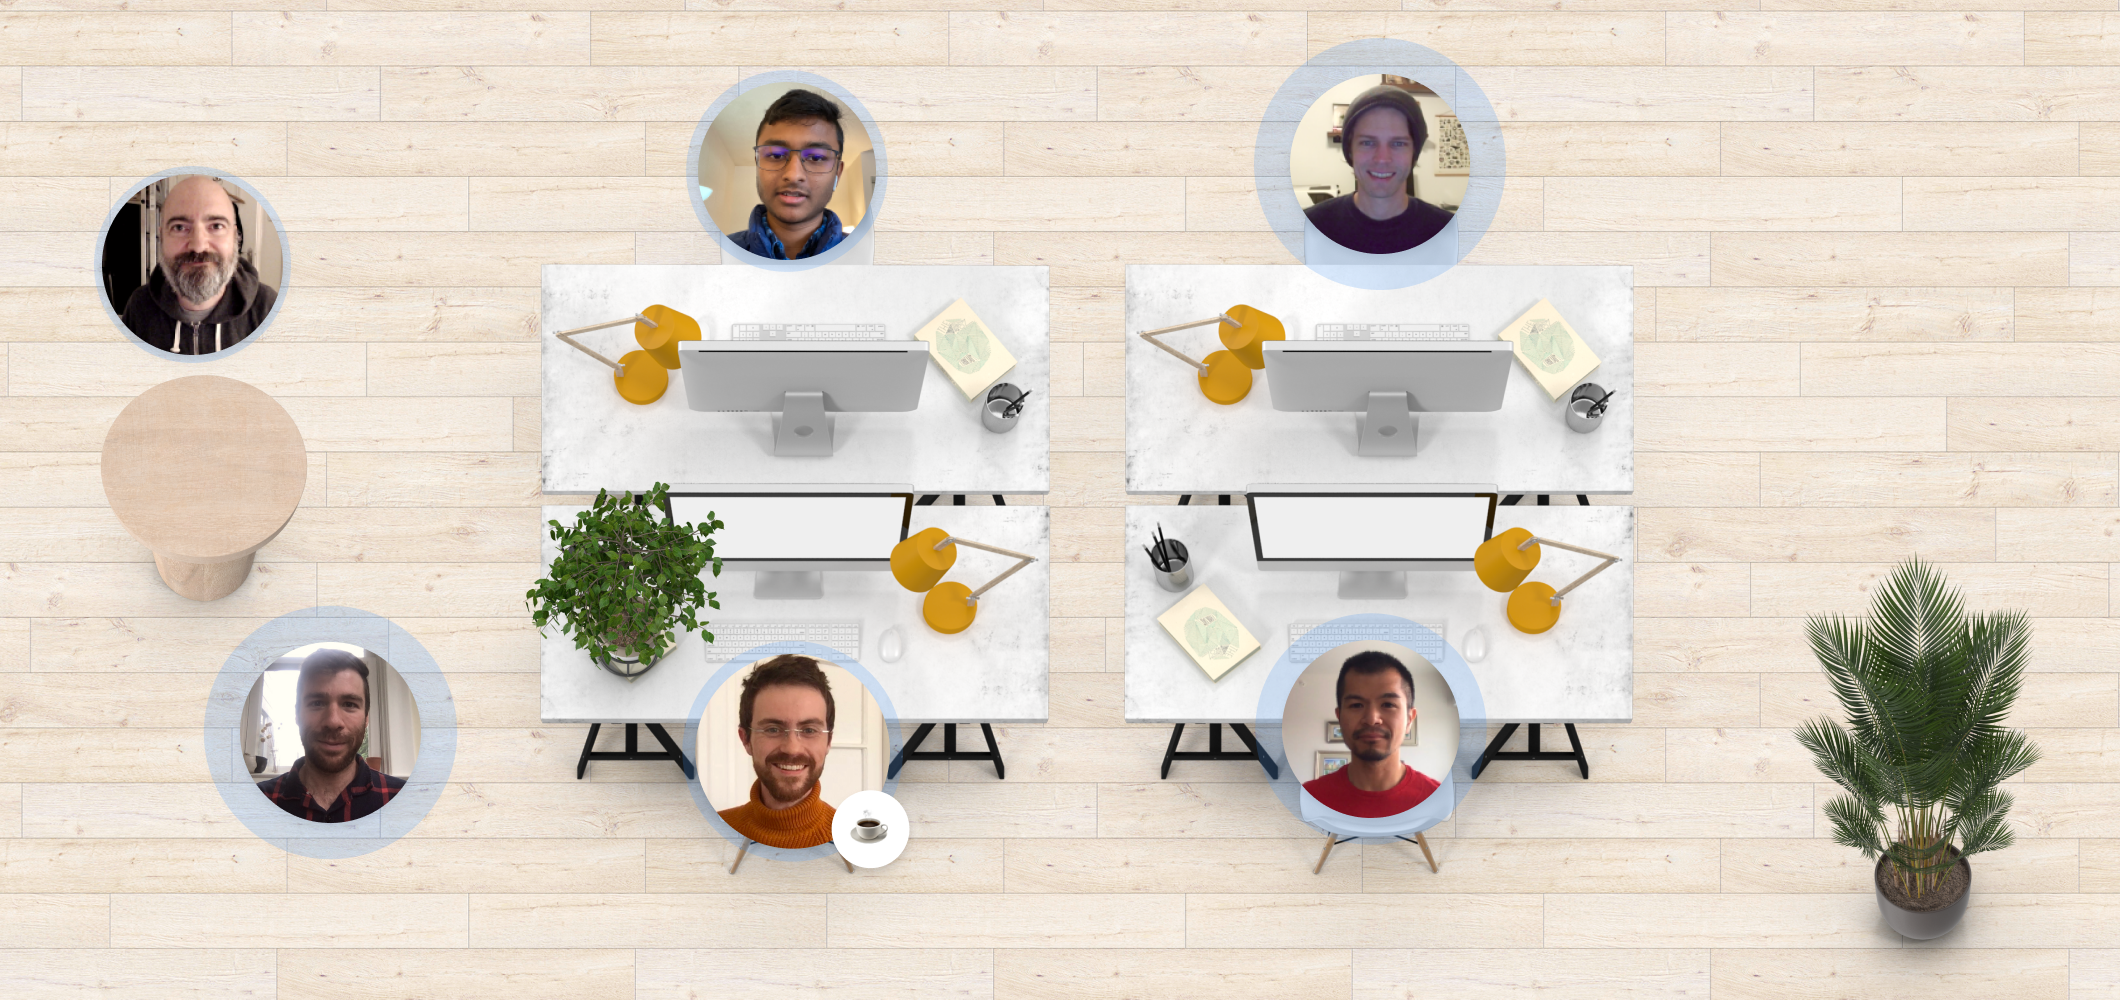 Announcing Teamflow: Feel like a team again with your own virtual office